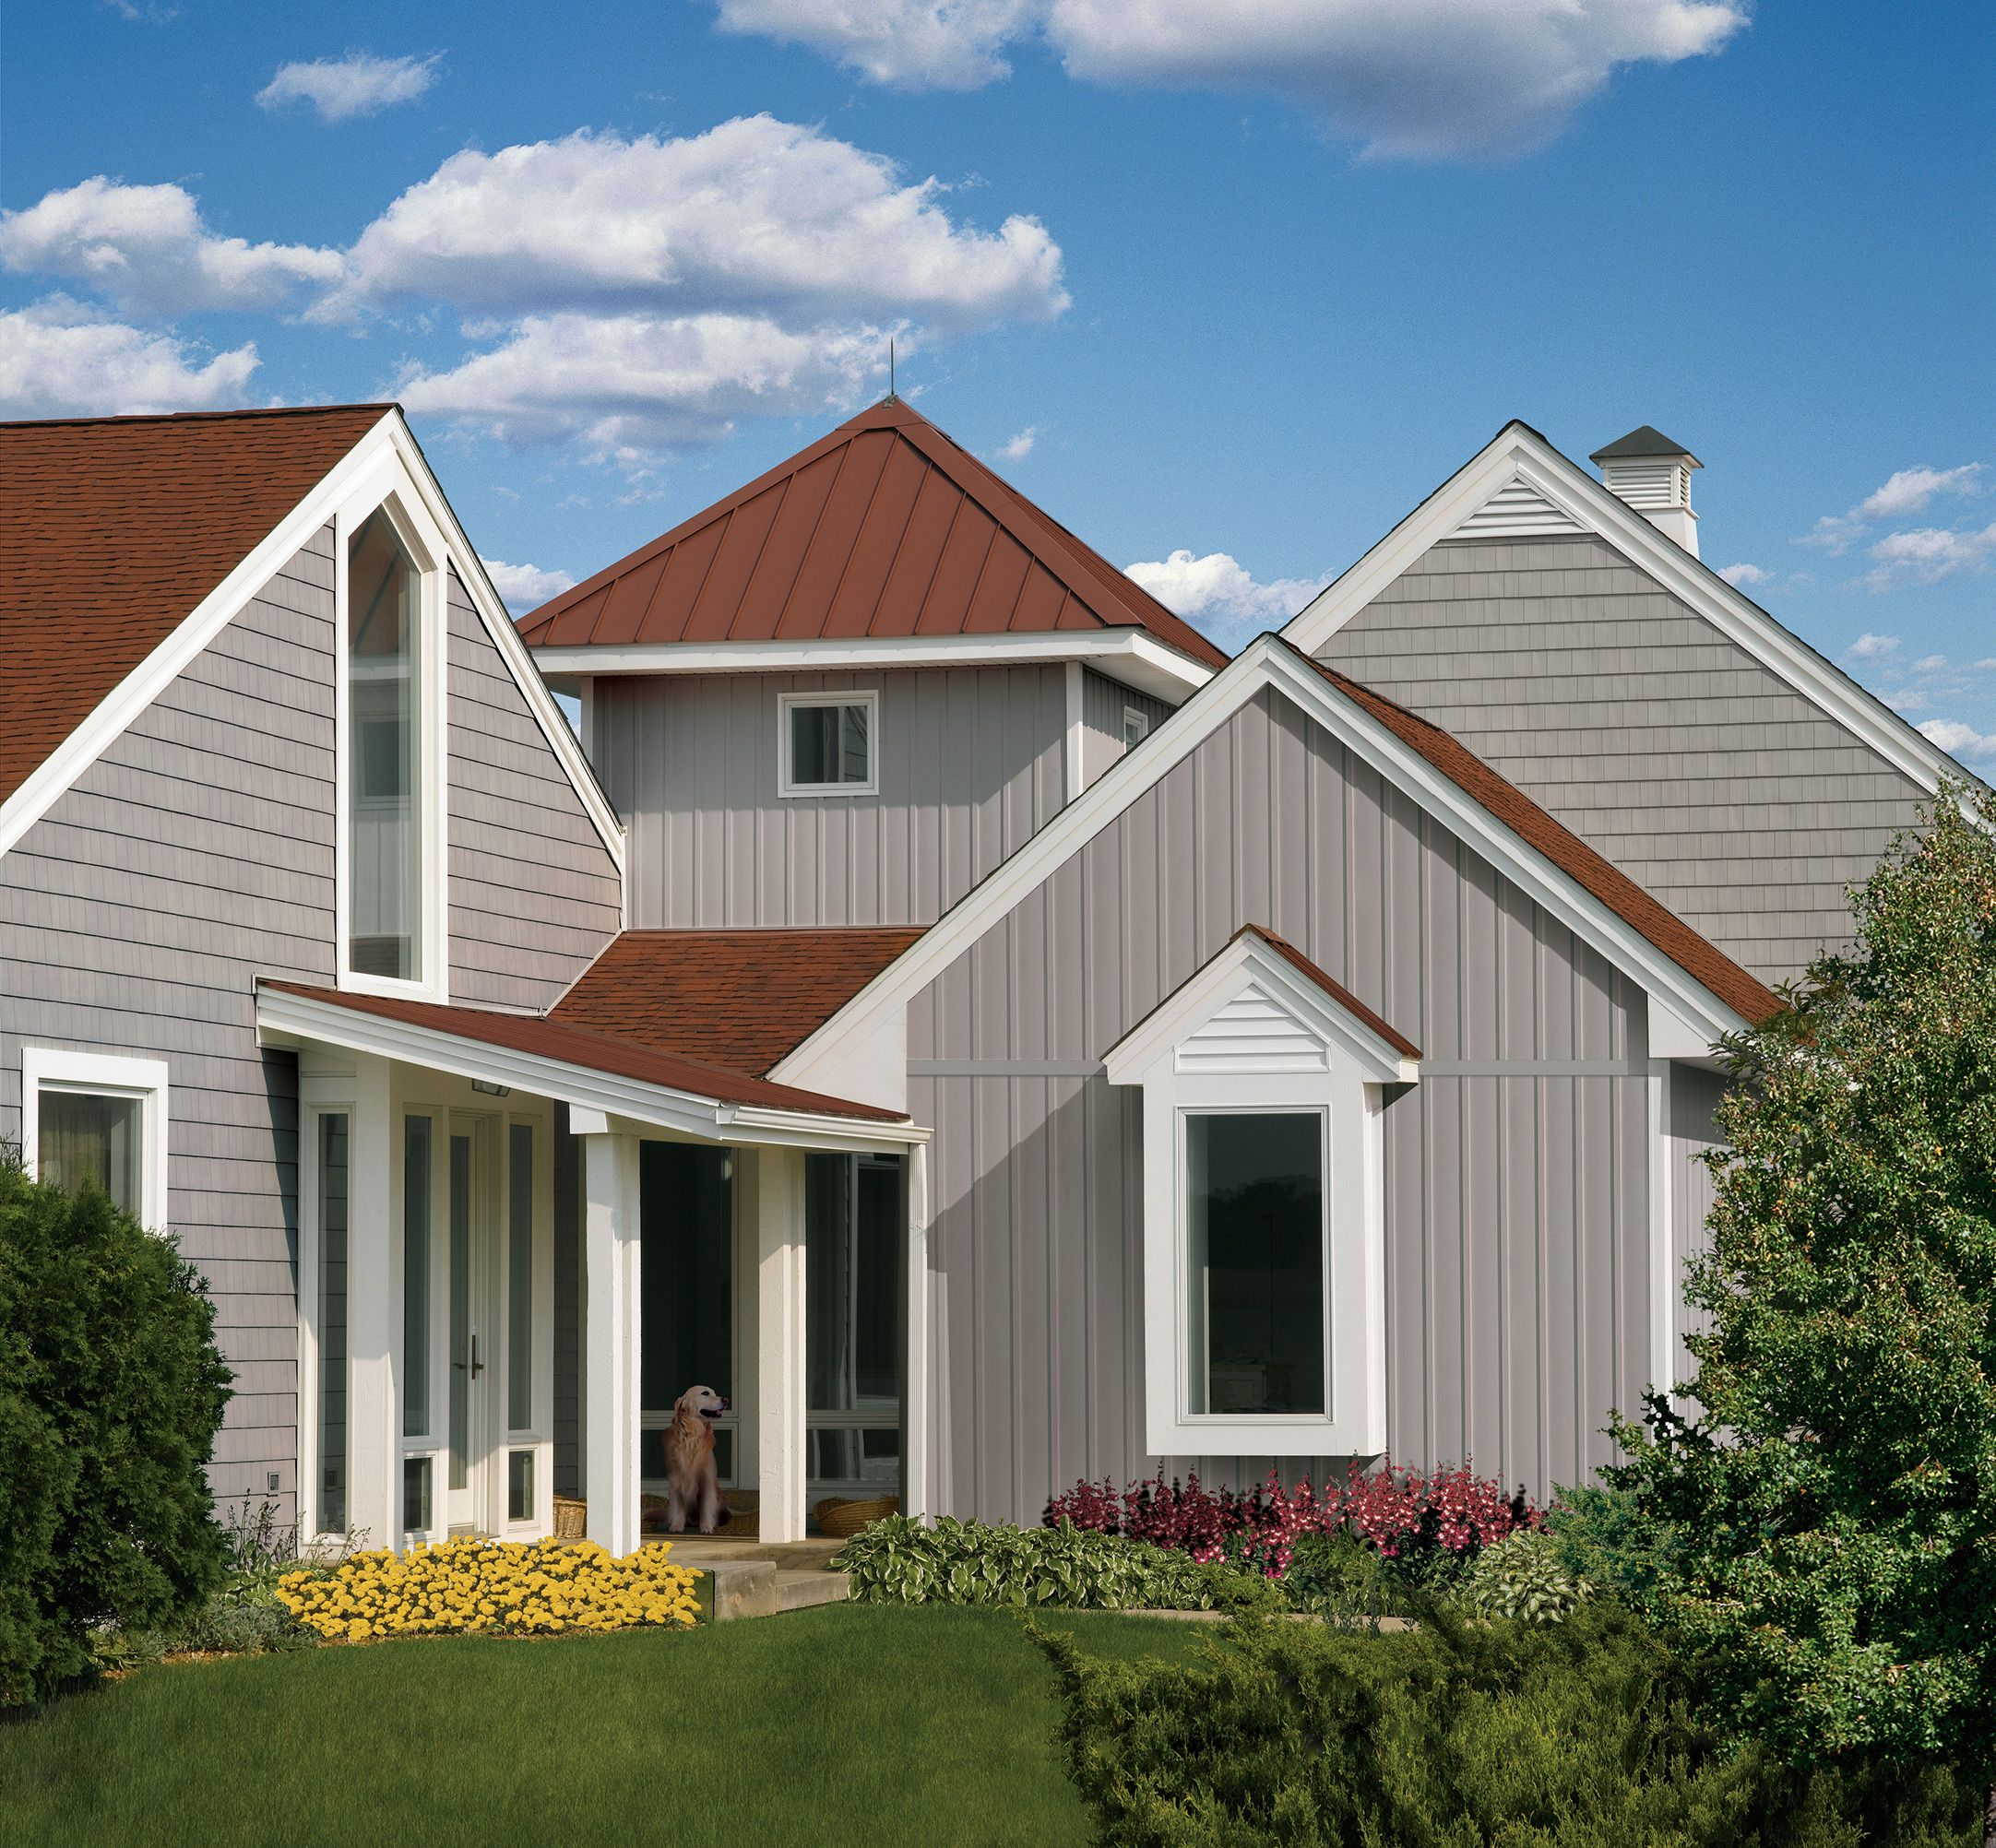 Modern House Red Roof: Red Roof, Siding Color, White Trim Modern: Shake